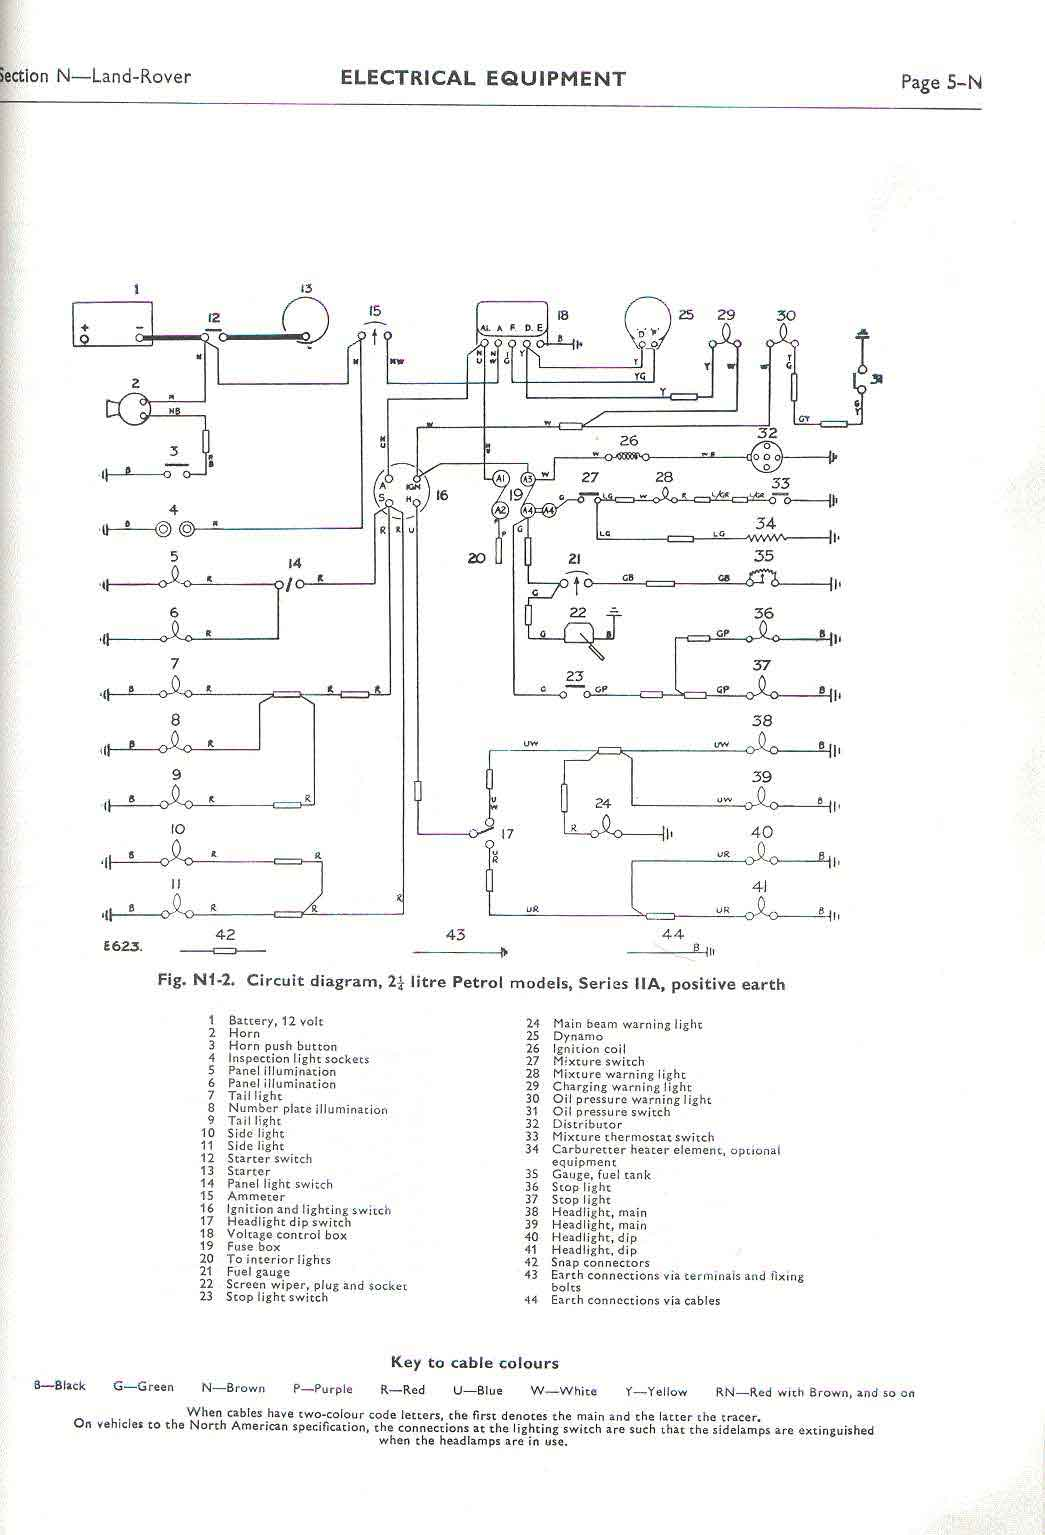 1999 Discovery 2 Land Rover Wiring Diagrams 43 Diagram Disco Siia Ve Faq Repair Maintenance Series Electrical 1 At